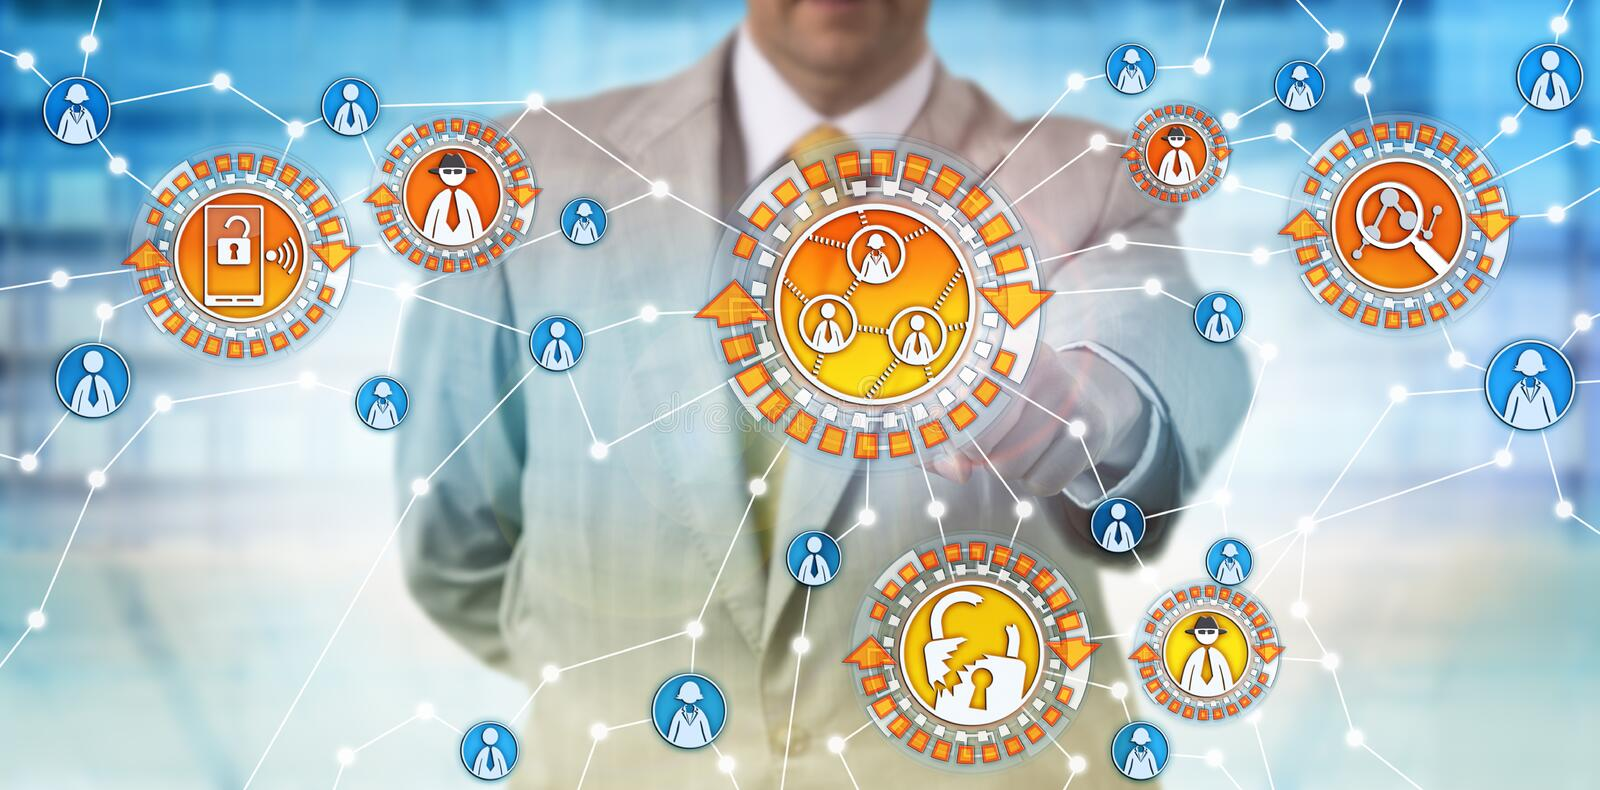 Administrator Troubleshooting Social Network. Unrecognizable administrator is troubleshooting a social network for intrusions and cyber threats. Cybersecurity stock photo